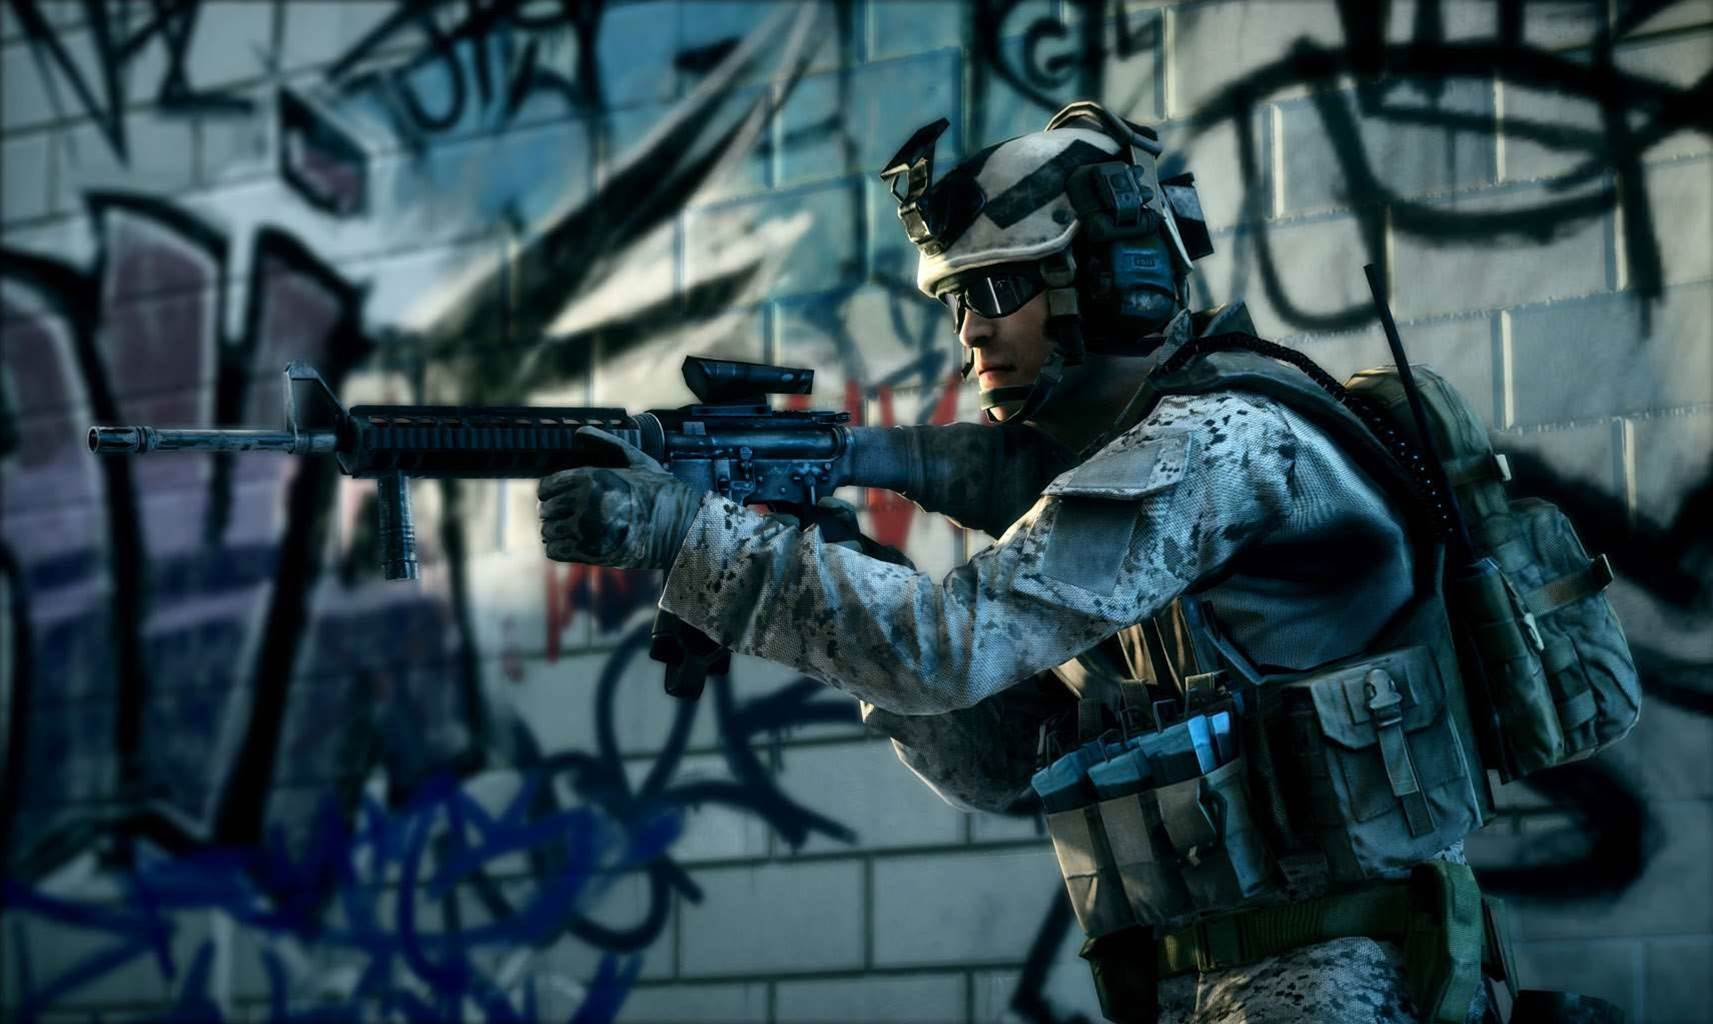 Battlefield 3 PC patch coming tomorrow!